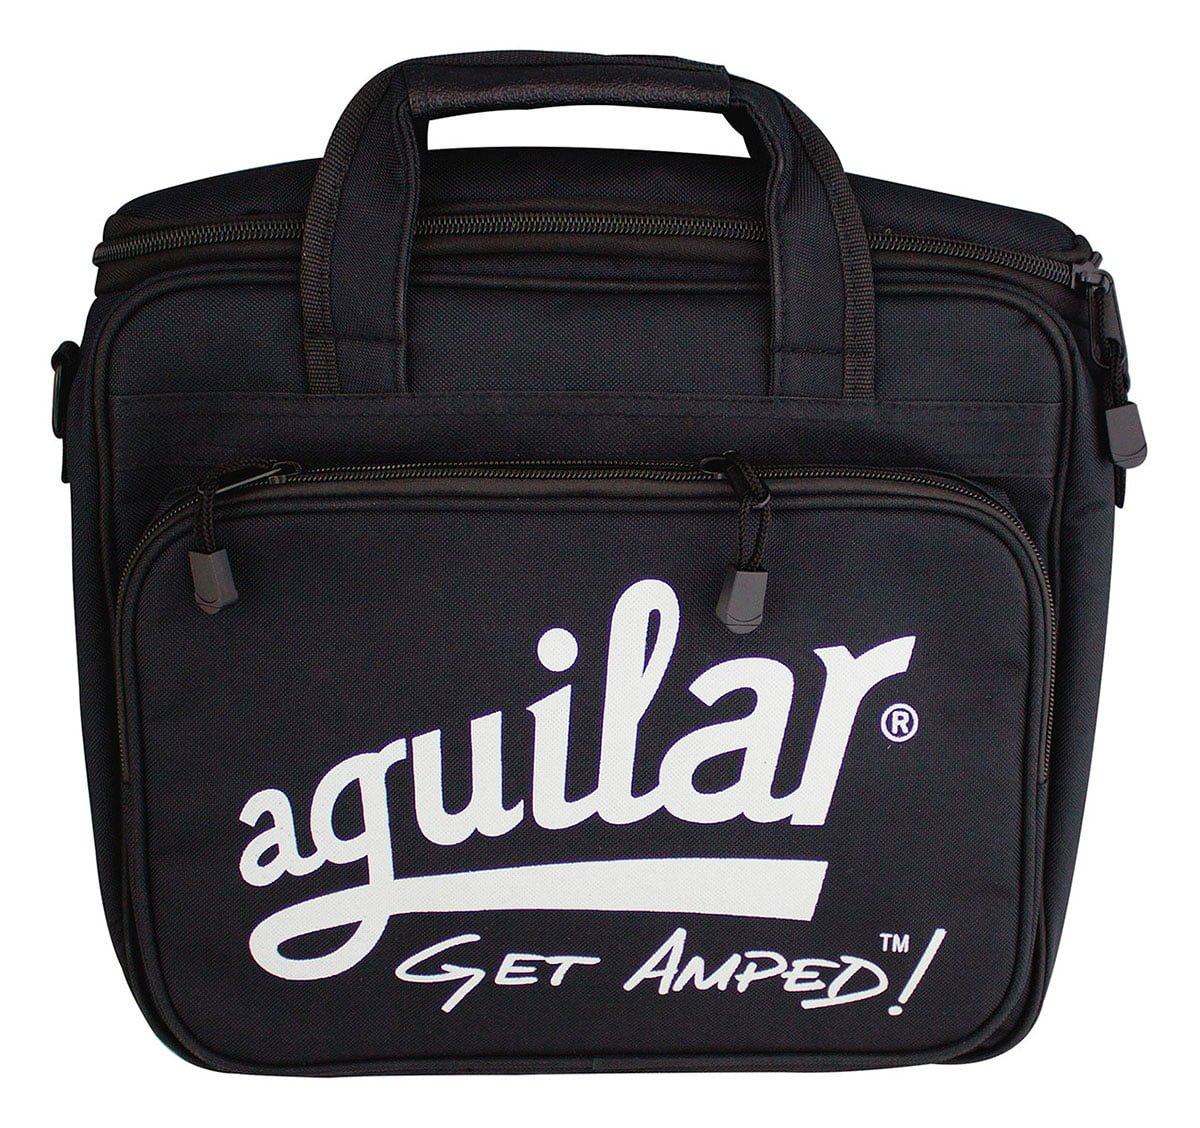 Aguilar Amplifier Cases and Bags